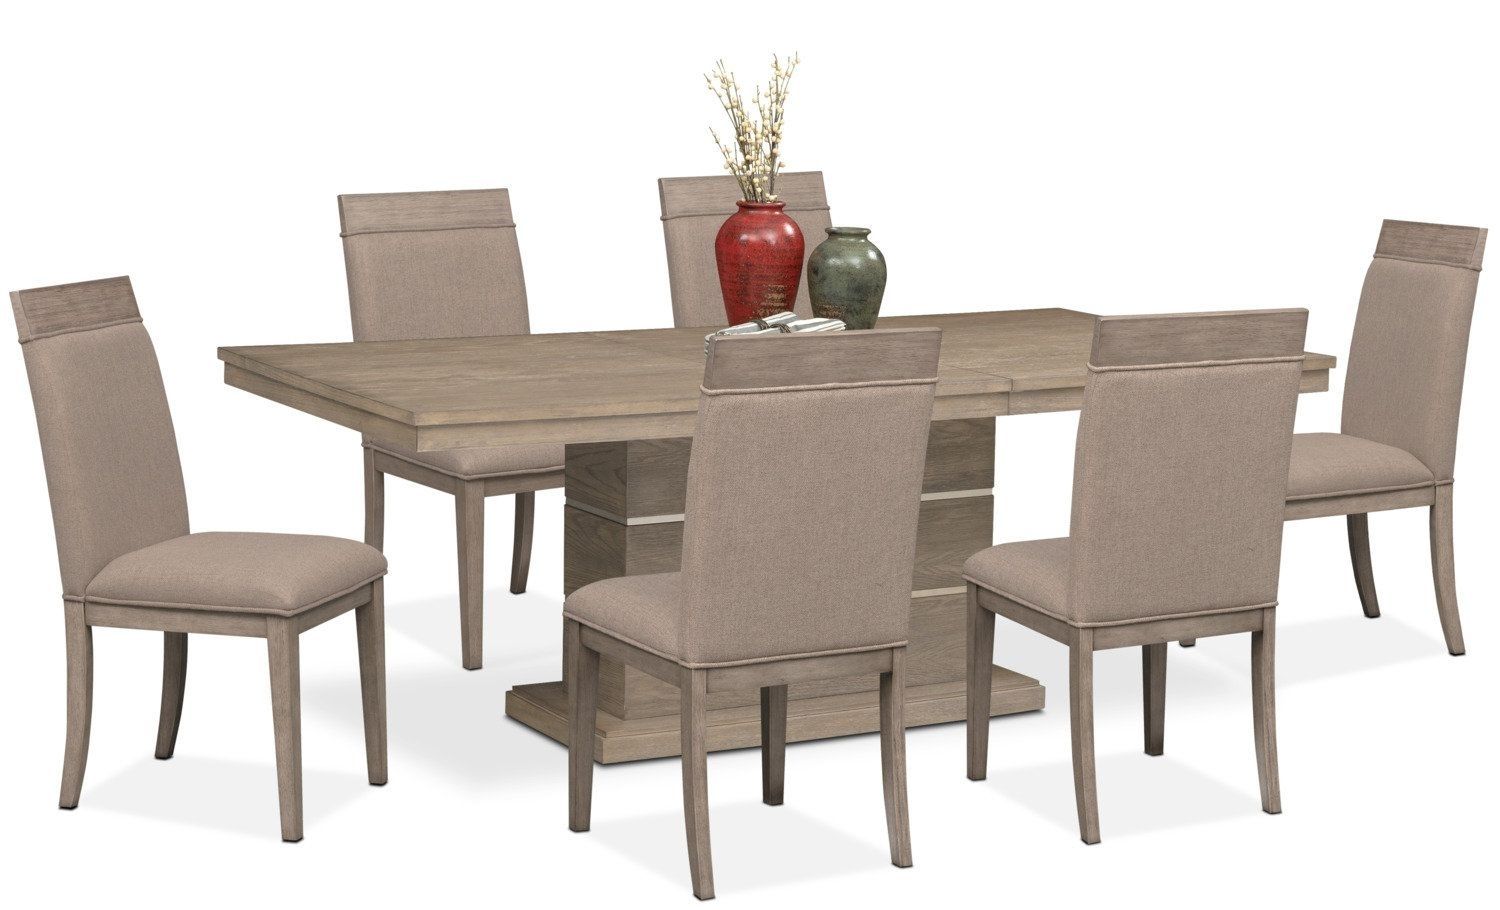 Gavin Pedestal Table And 6 Side Chairs – Graystone | Dining Room Pertaining To 2017 Gavin Dining Tables (Photo 10 of 20)